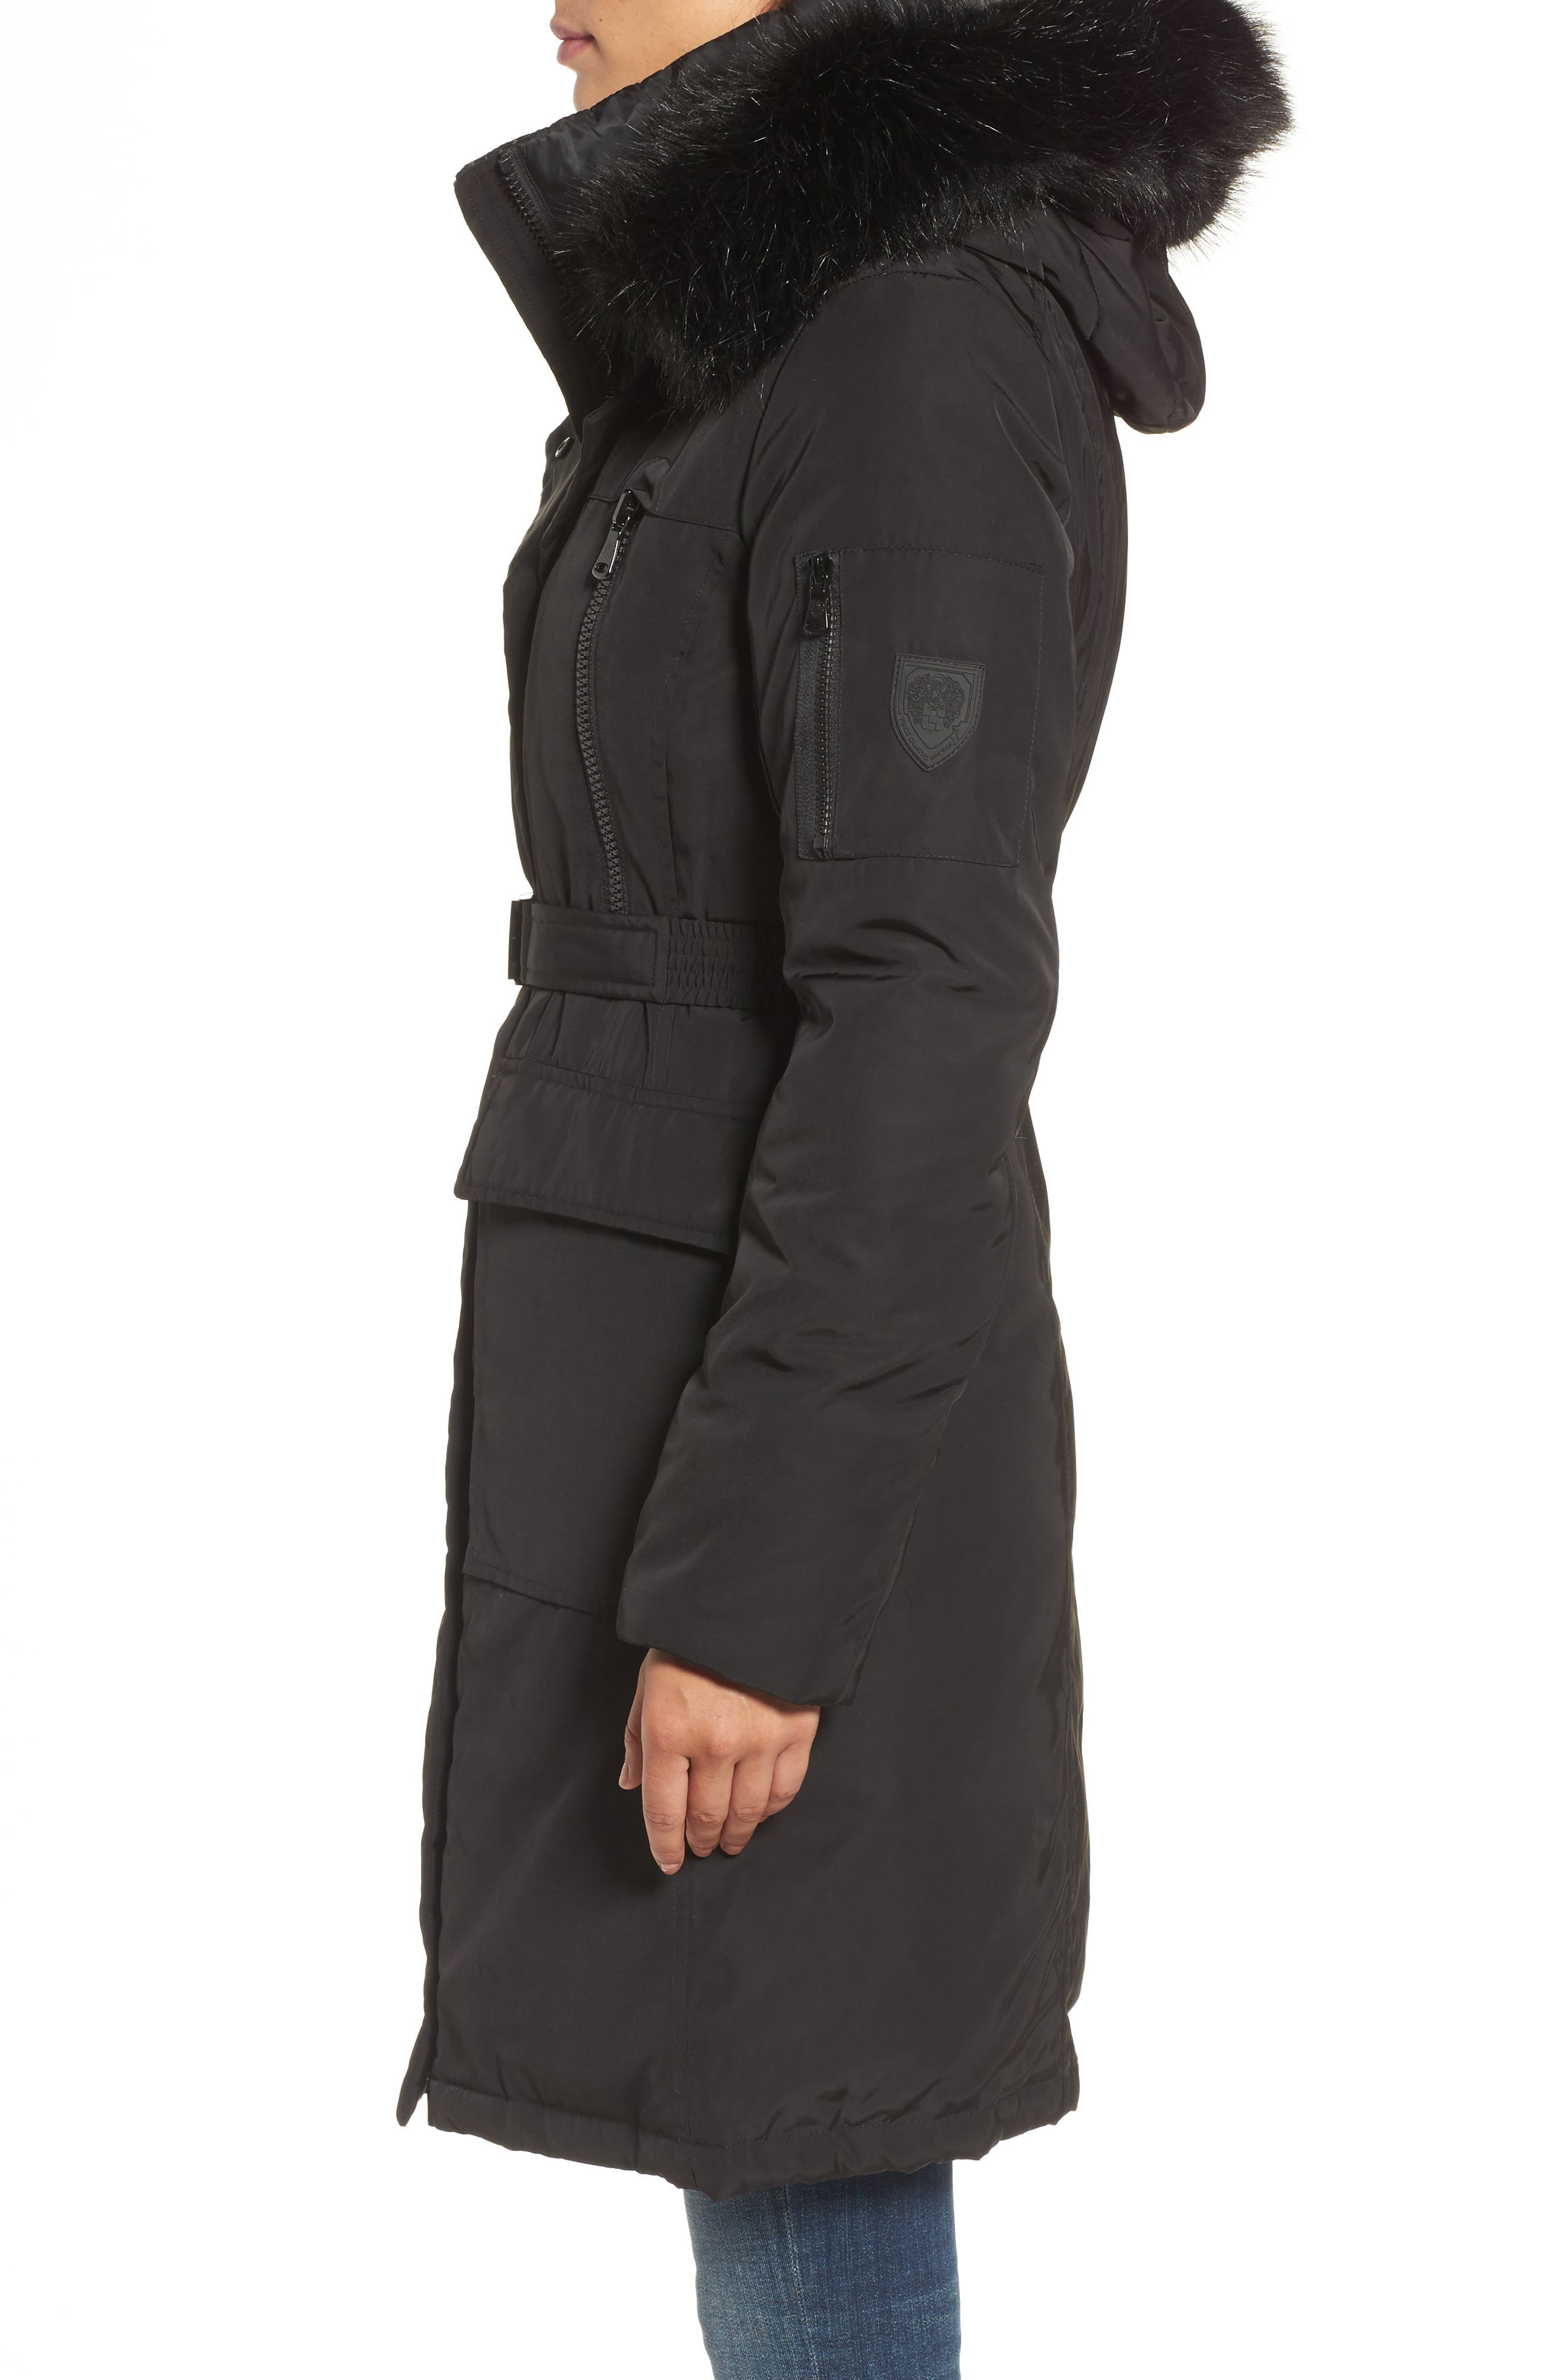 Insulated Puffer Jacket,                             Alternate thumbnail 3, color,                             001